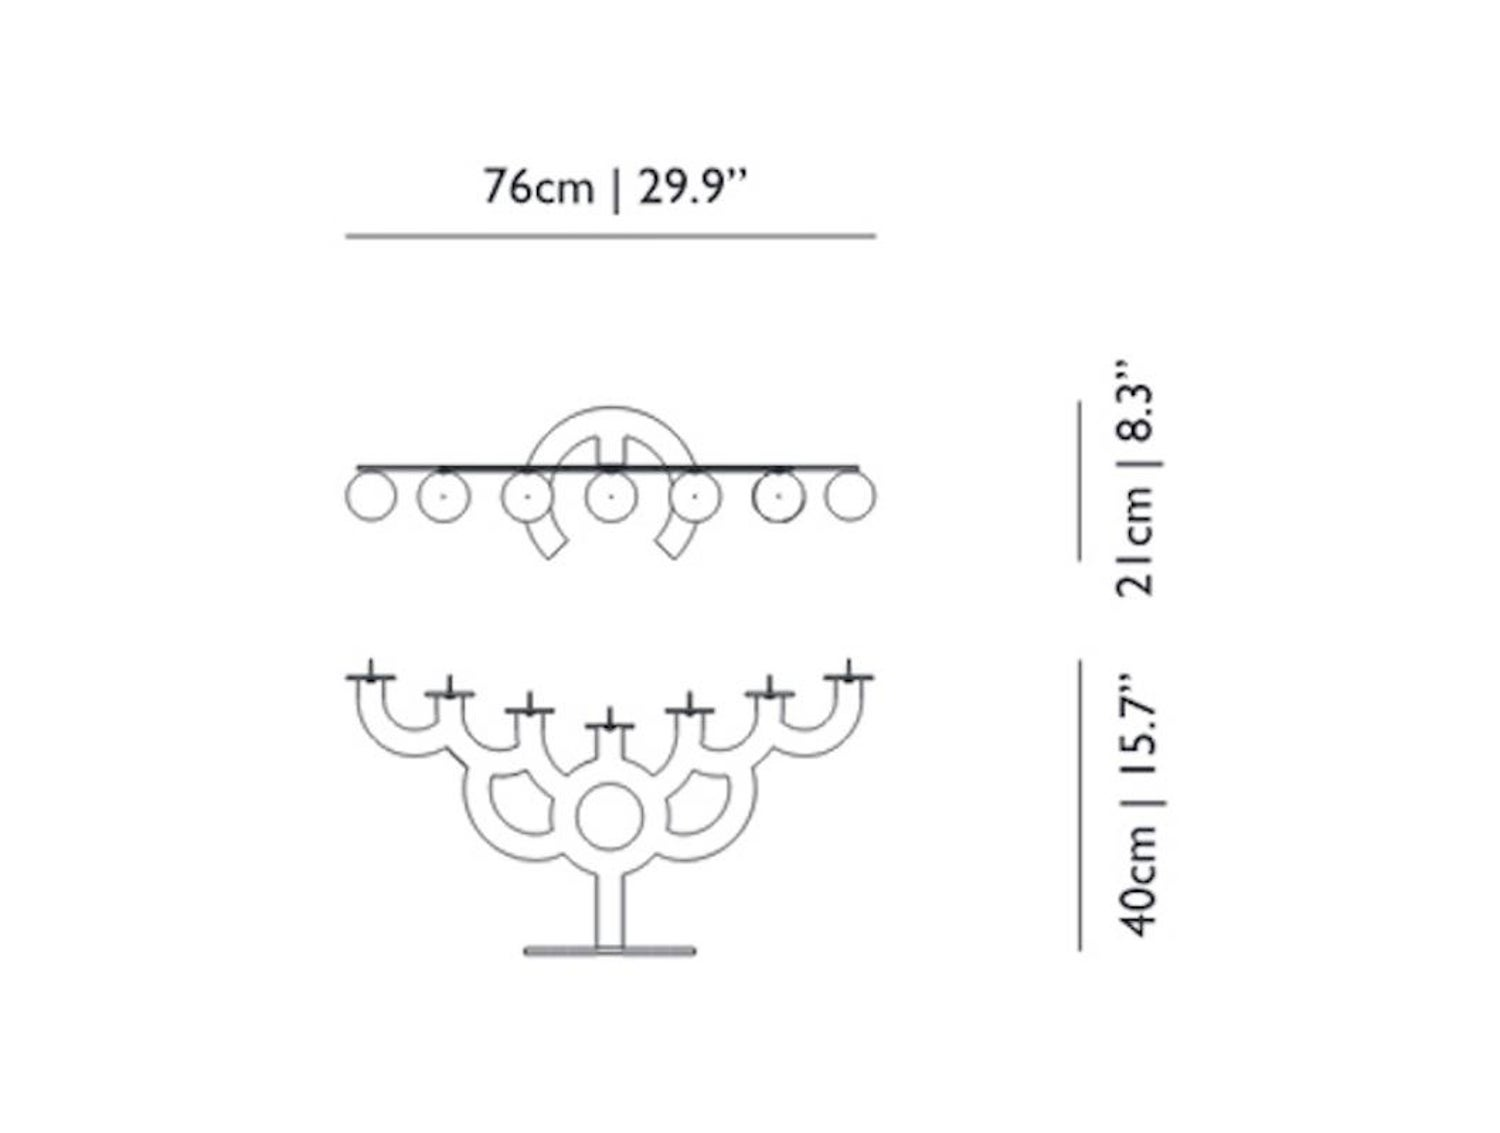 Moooi Menorah Bold Candleholder In White Powder Coated Steel By Lighting Diagram Roderick Vos For Sale At 1stdibs